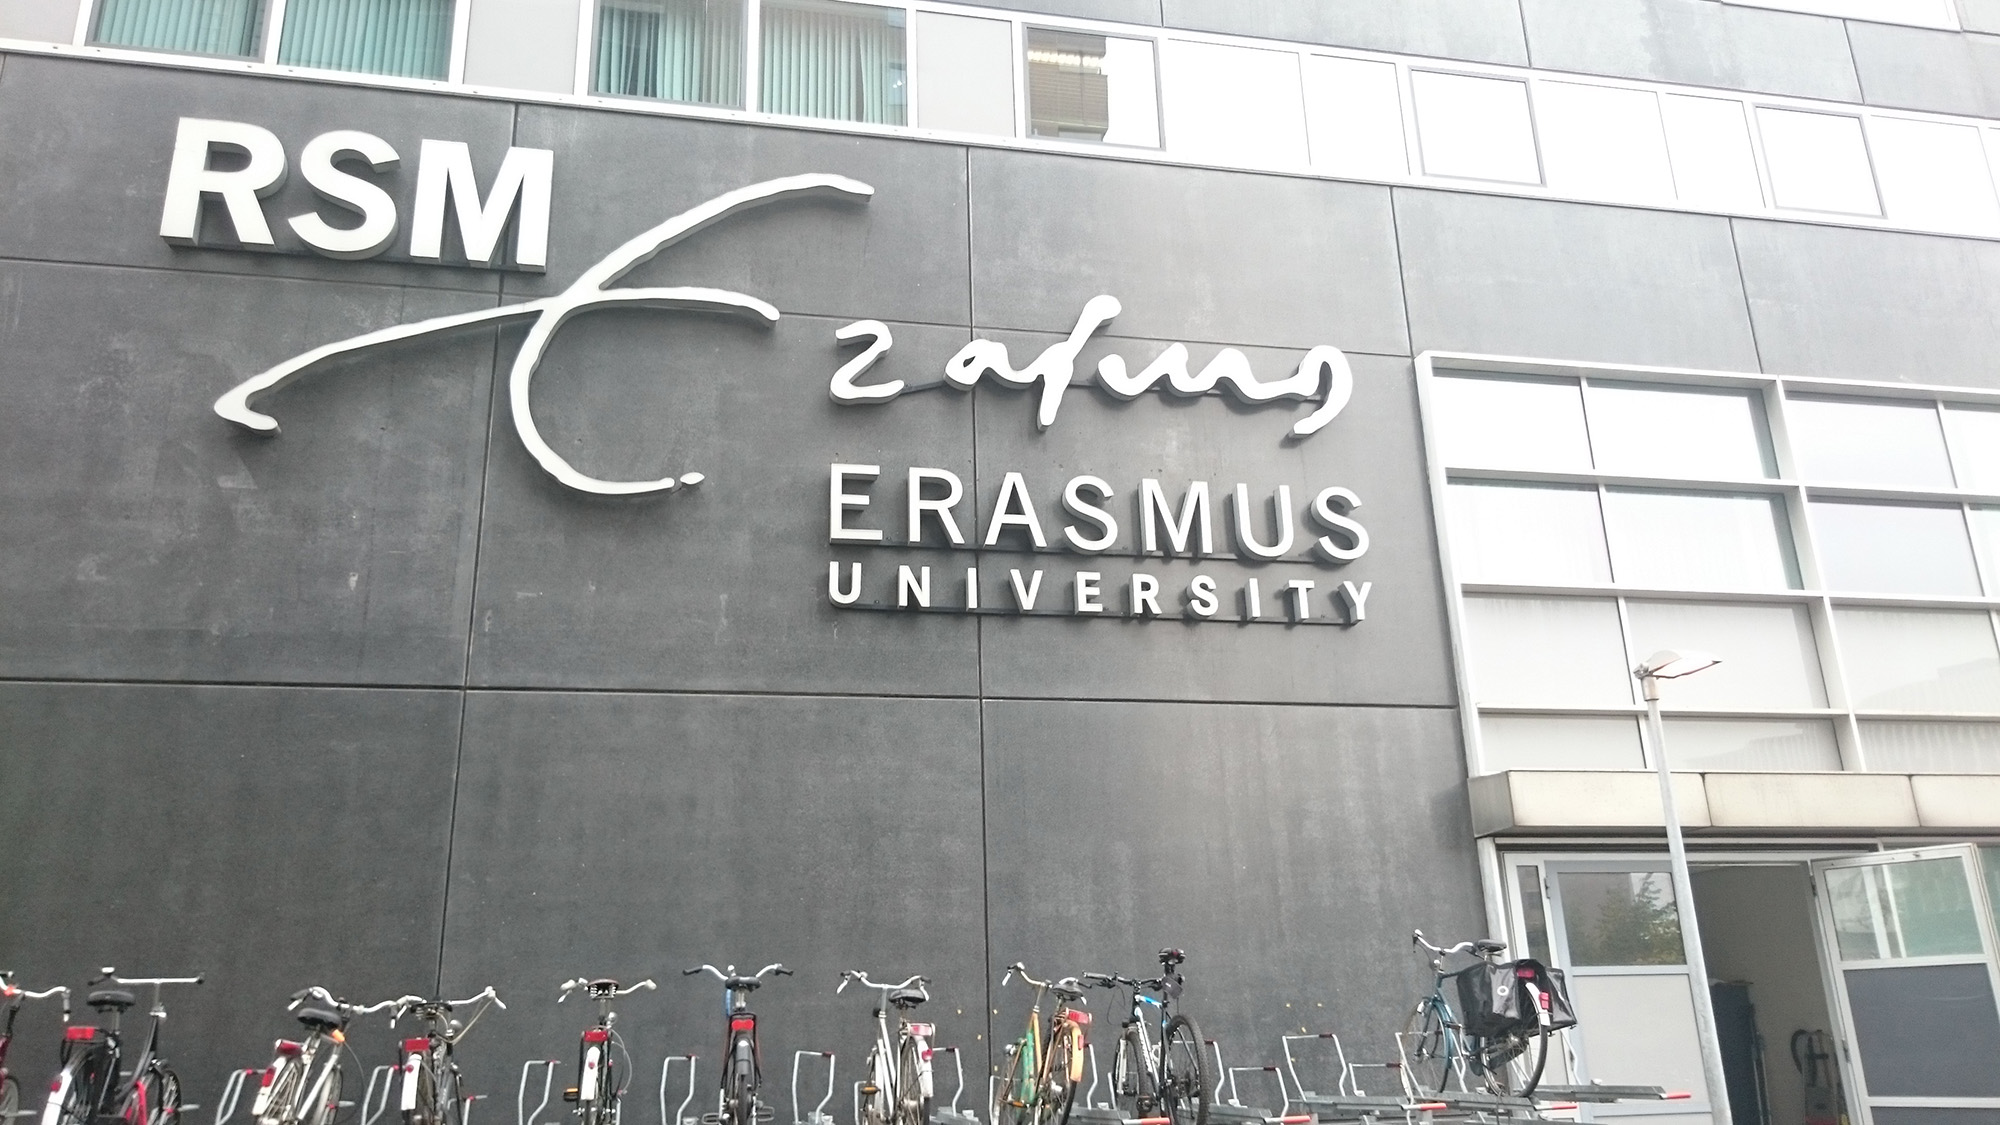 rsm erasmus rotterdam school of management